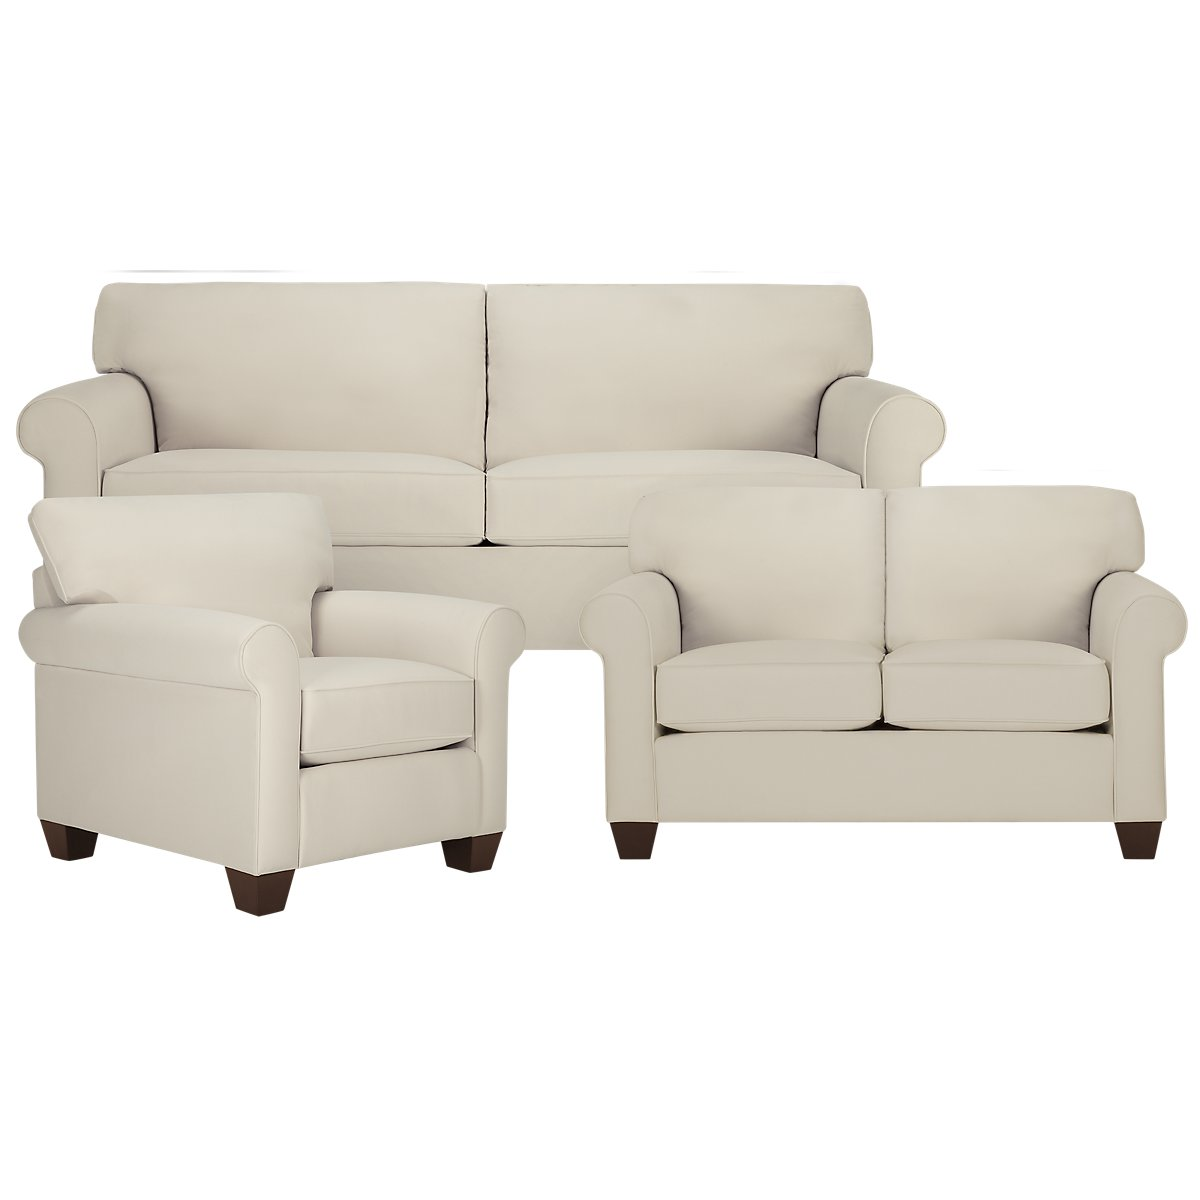 Beige Fabric Sofa Montreal Beige Fabric Sofa And Loveseat Set Steal A Thesofa